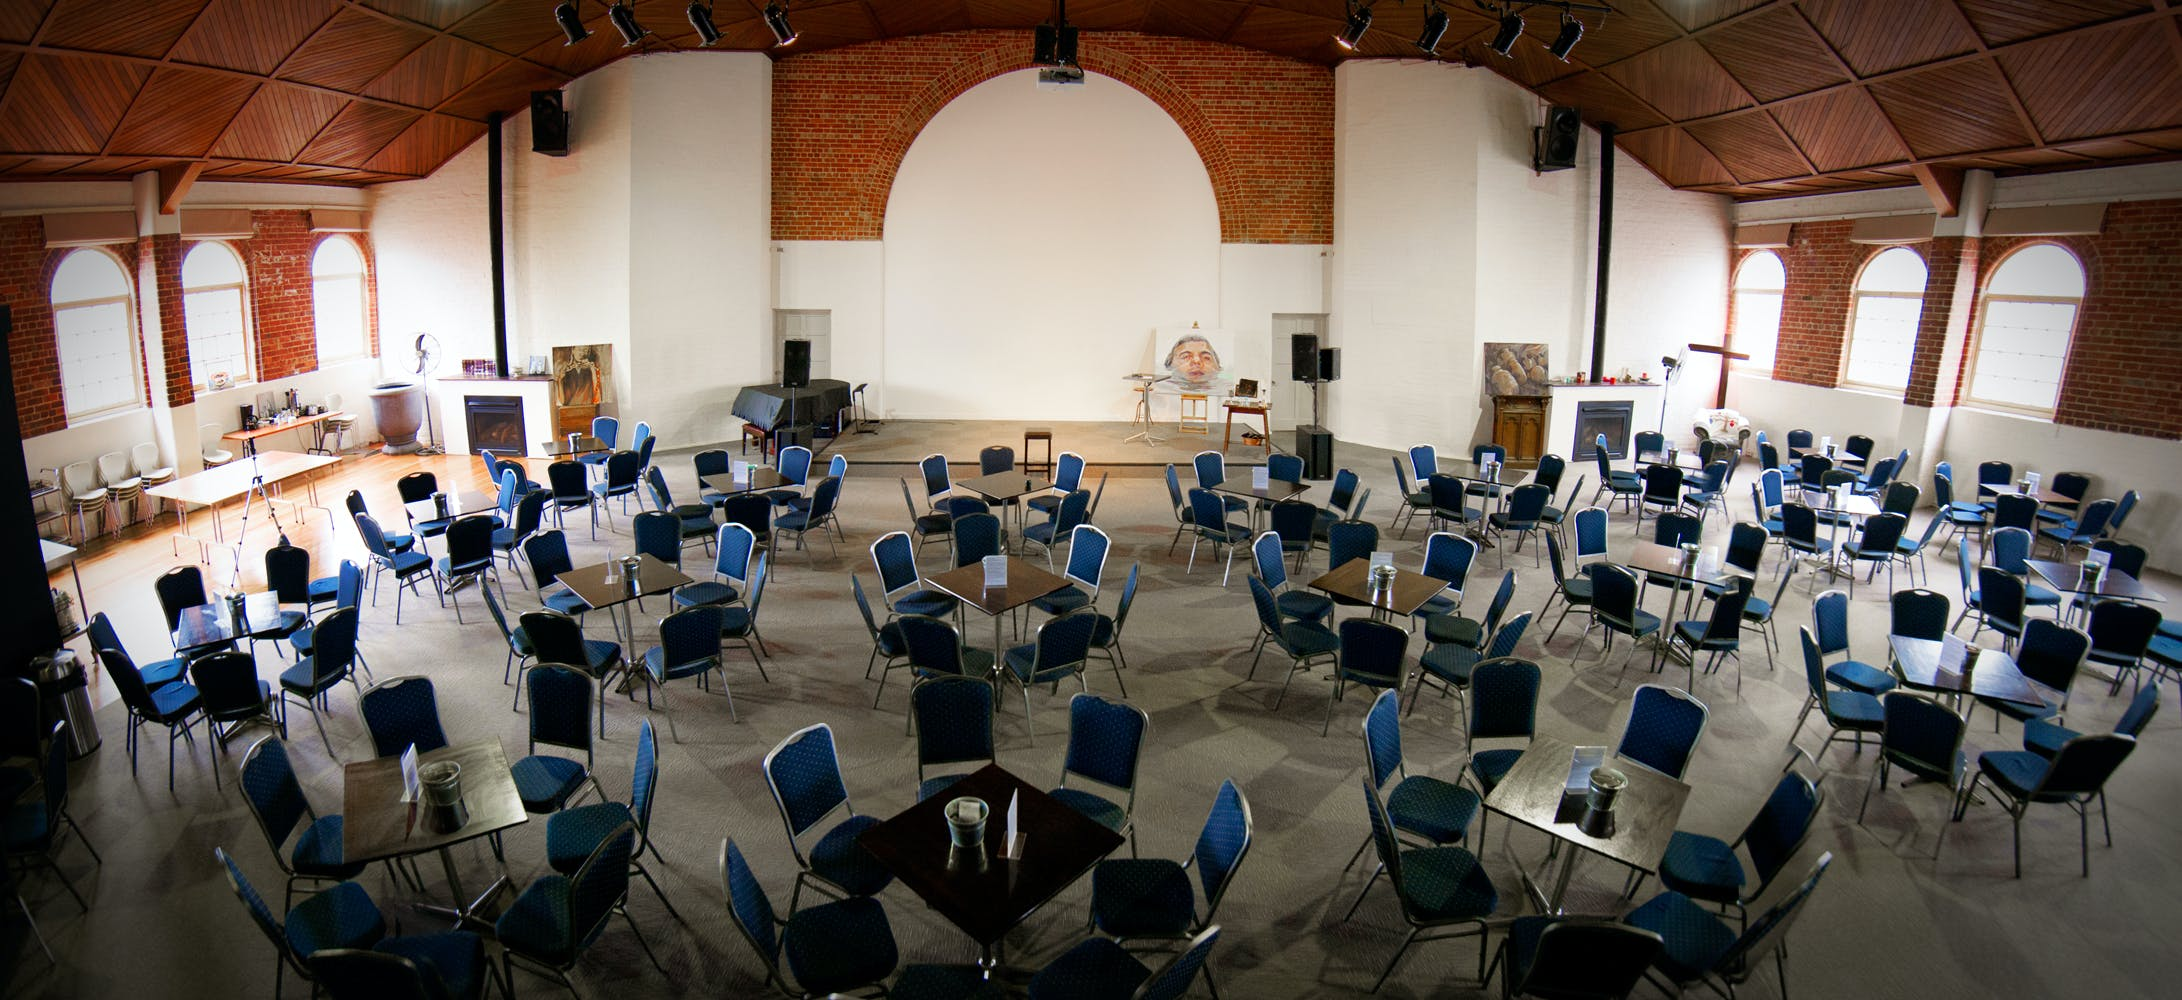 Large function space adaptable to suit a range of events, image 1